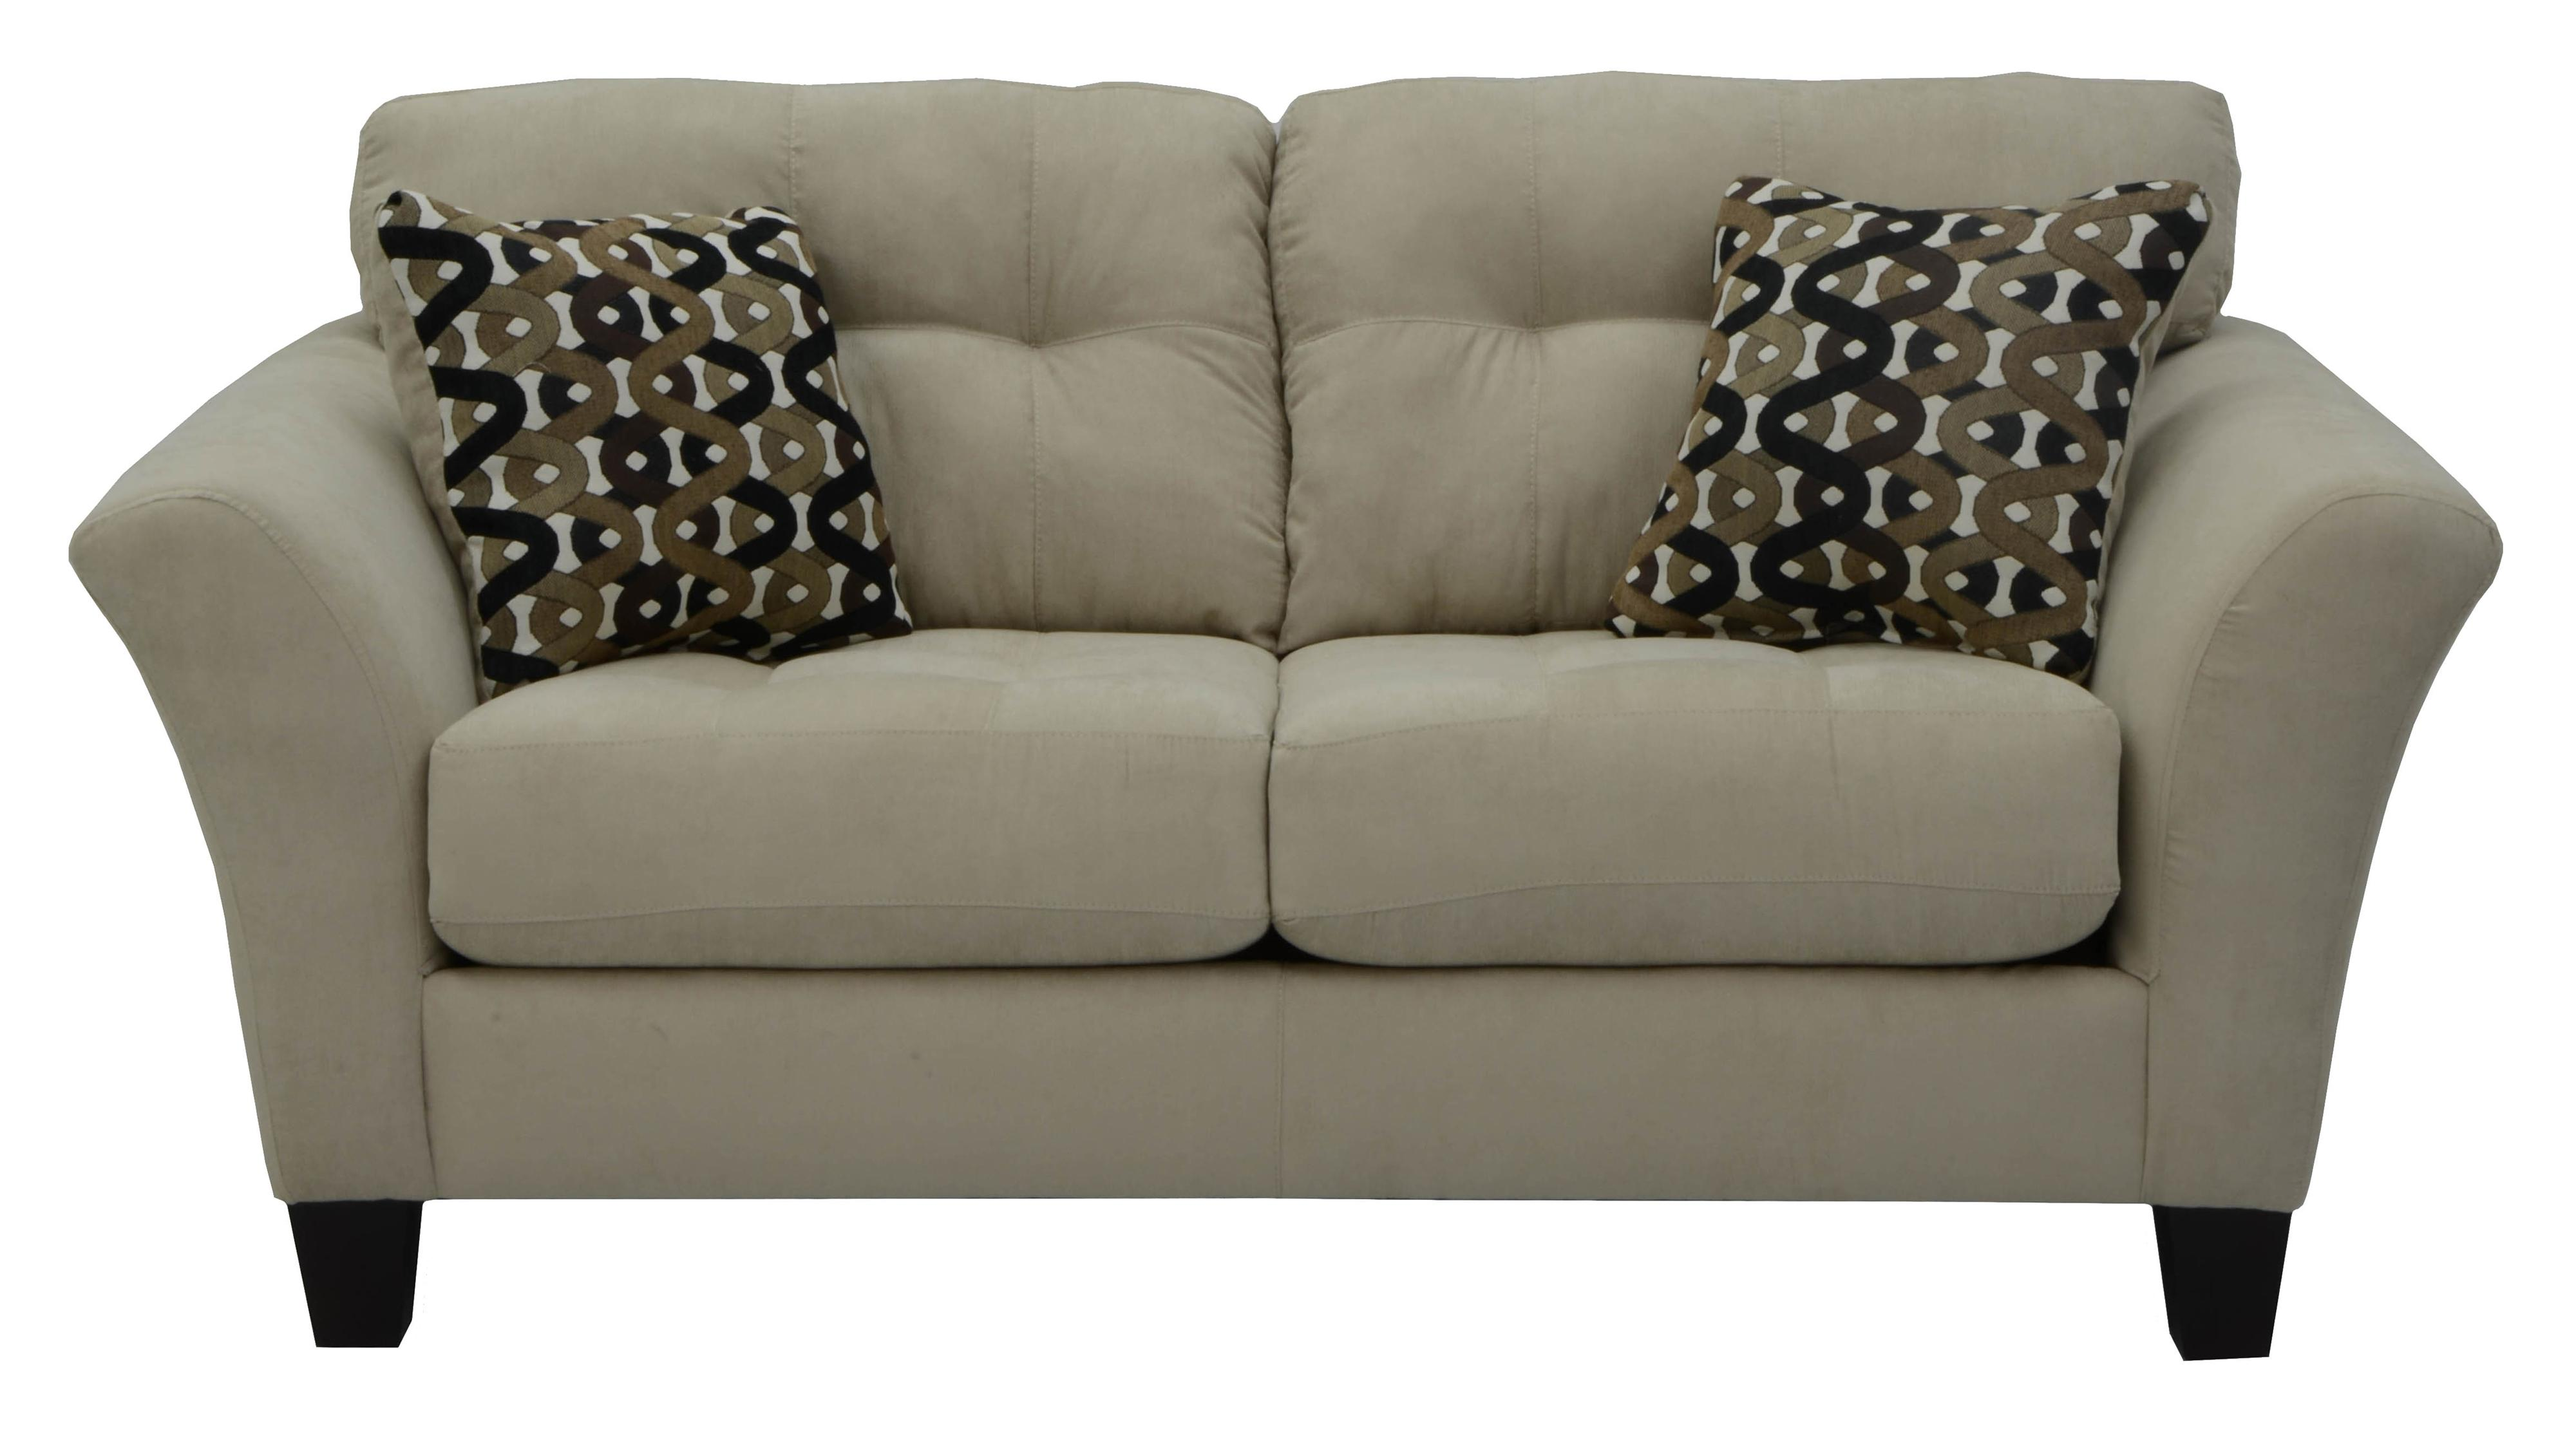 Loveseat With 2 Seats And Tufted Back Cushions By Jackson Furniture Wolf And Gardiner Wolf